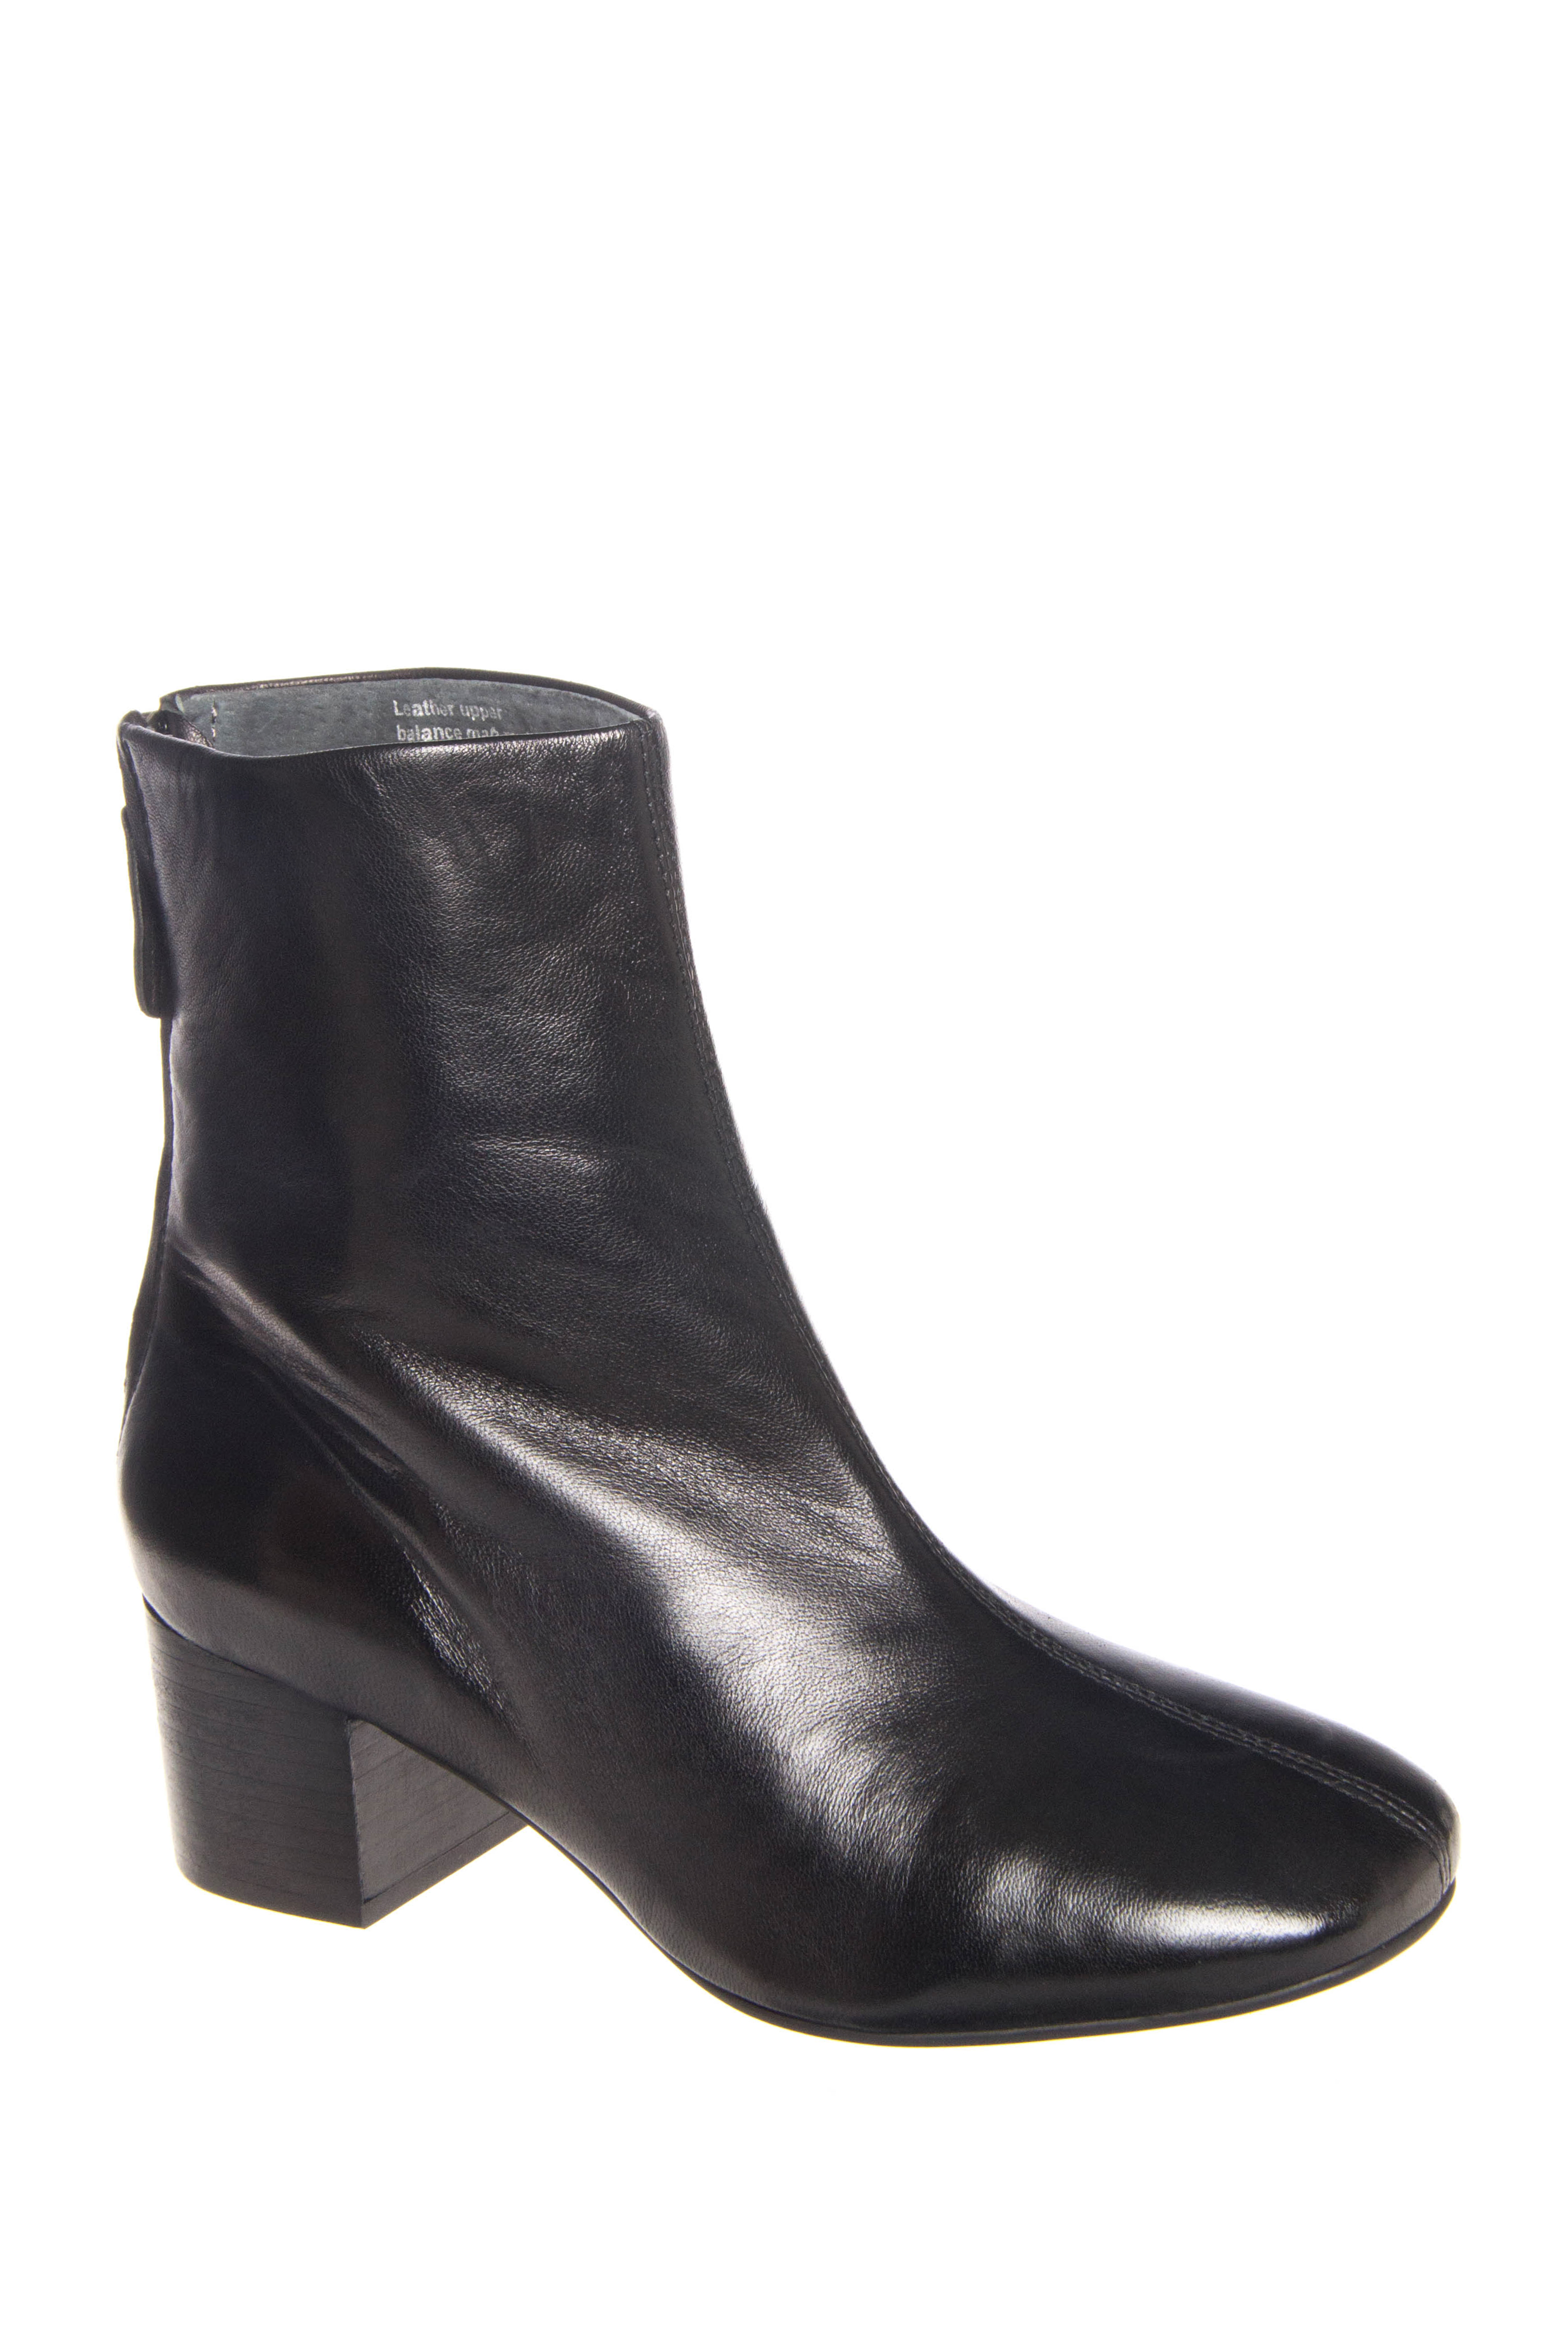 Seychelles Imaginary Mid Rise Boots - Black